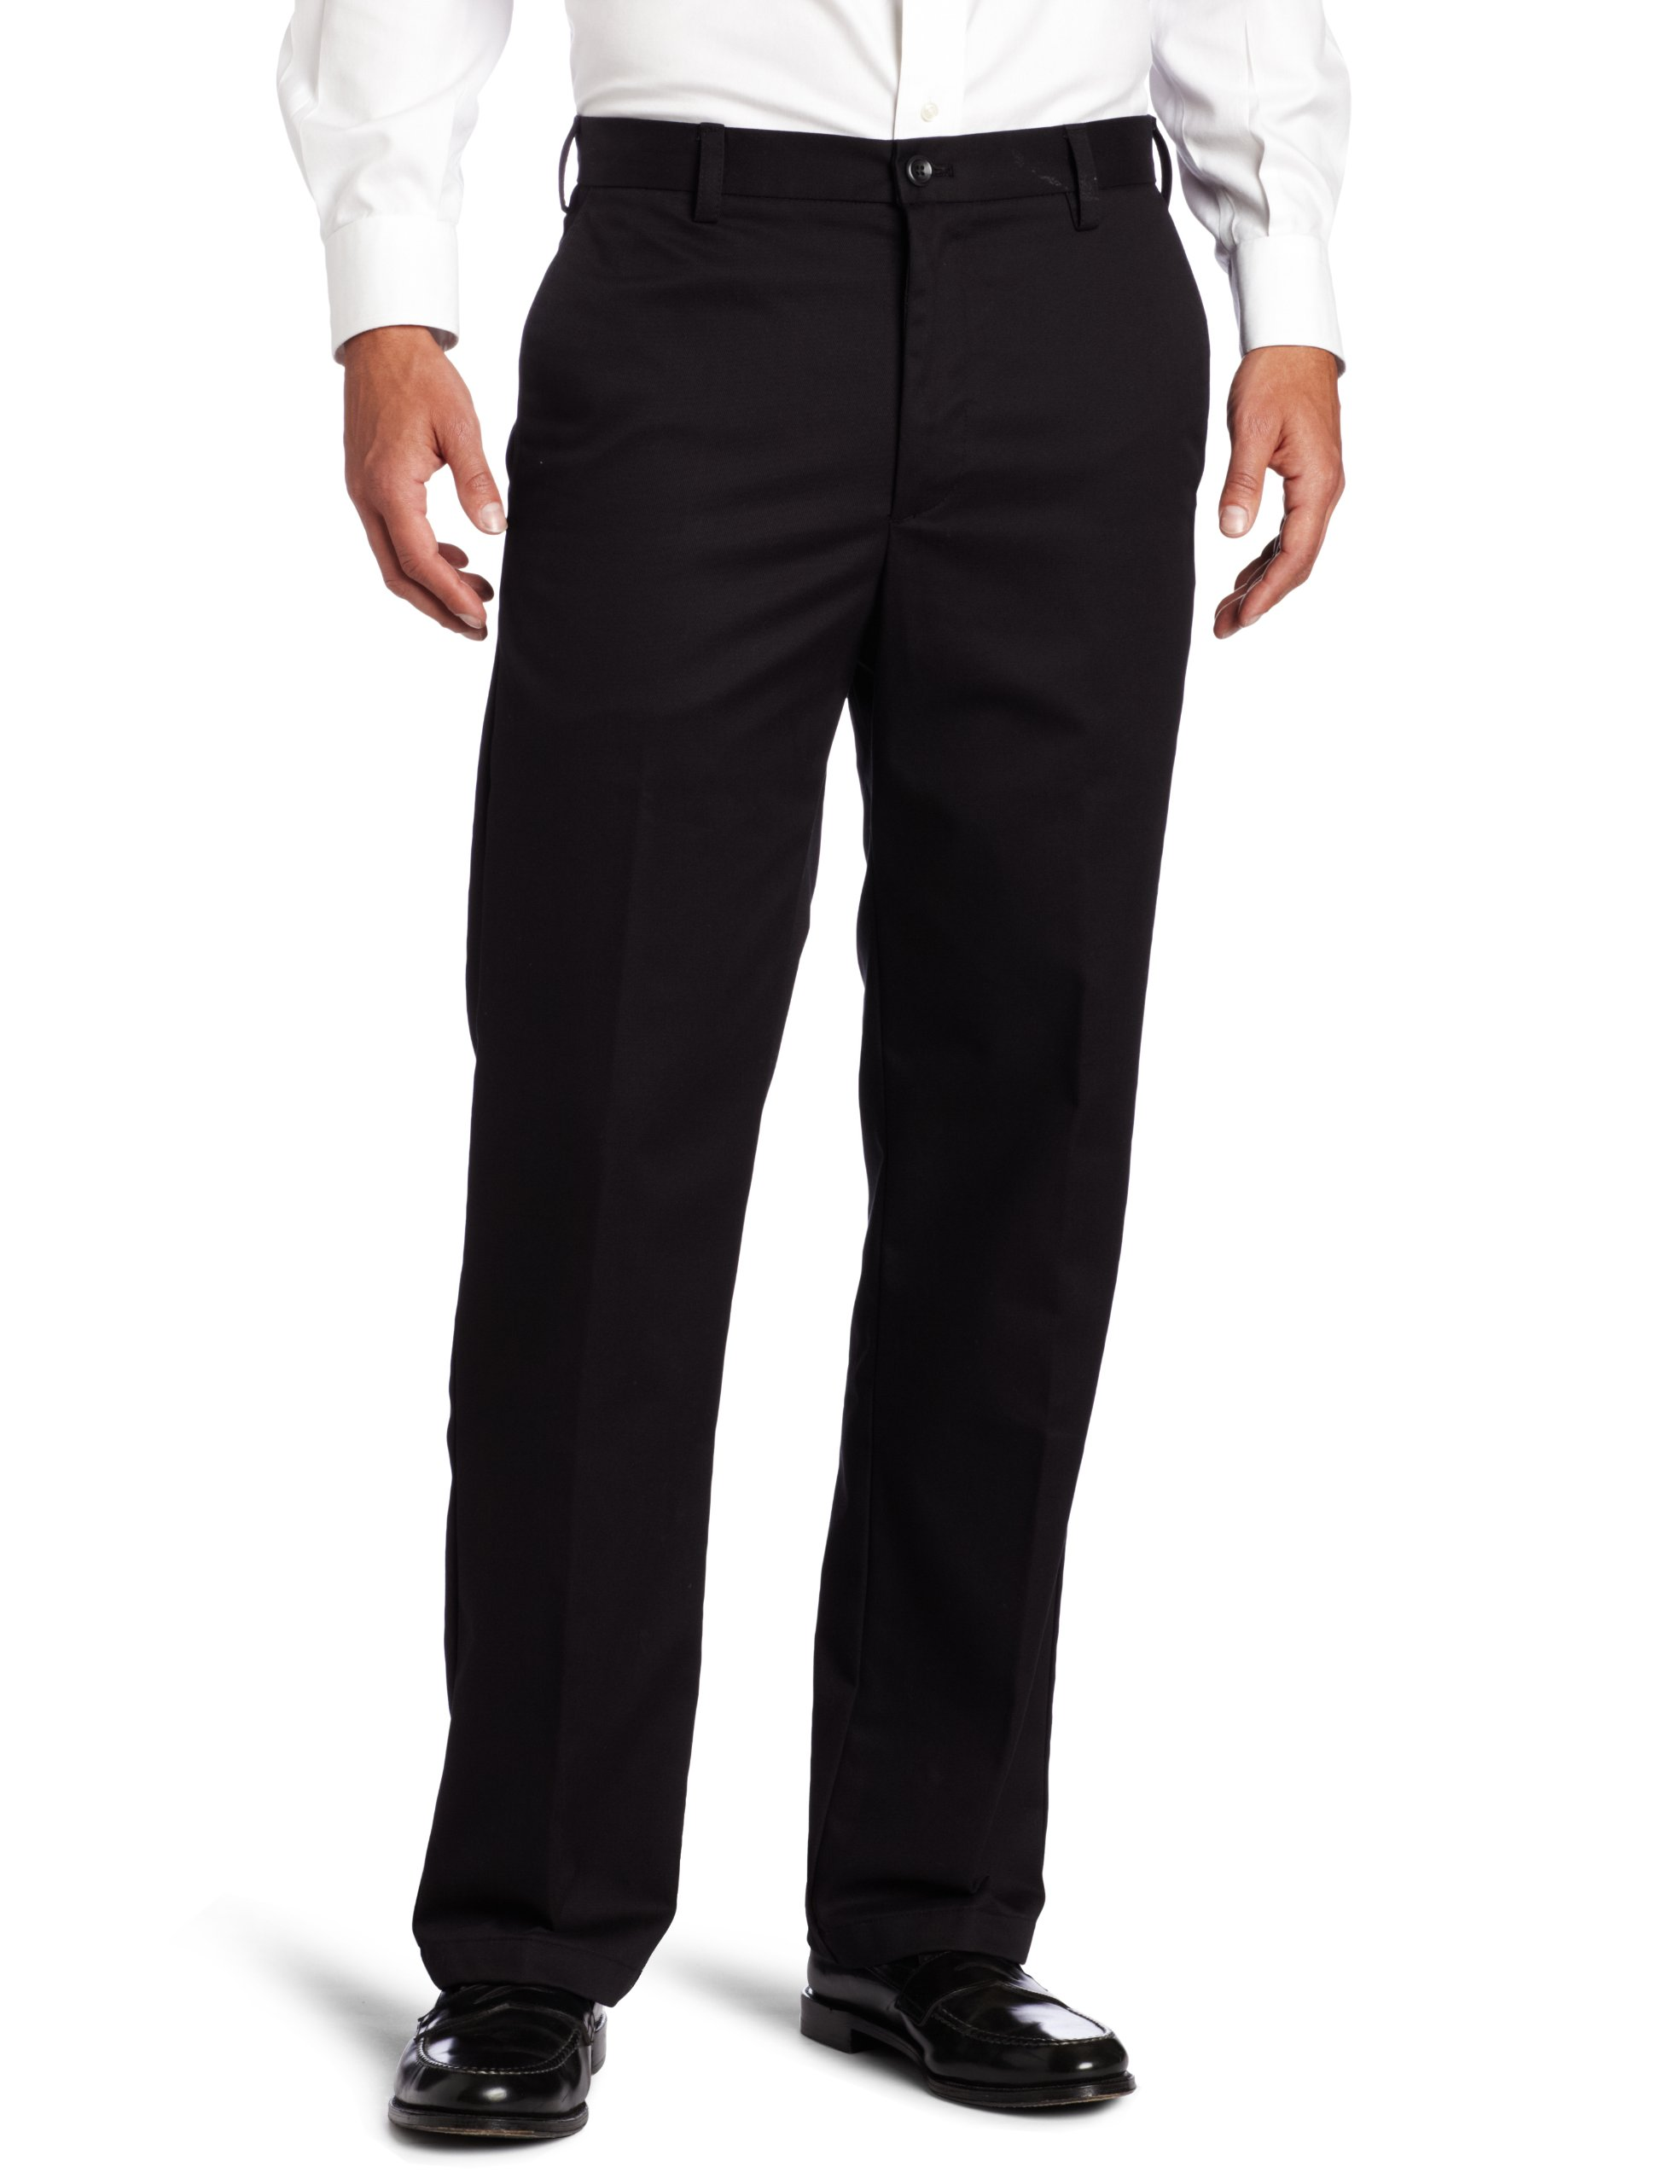 IZOD American Chino Front Straight Fit